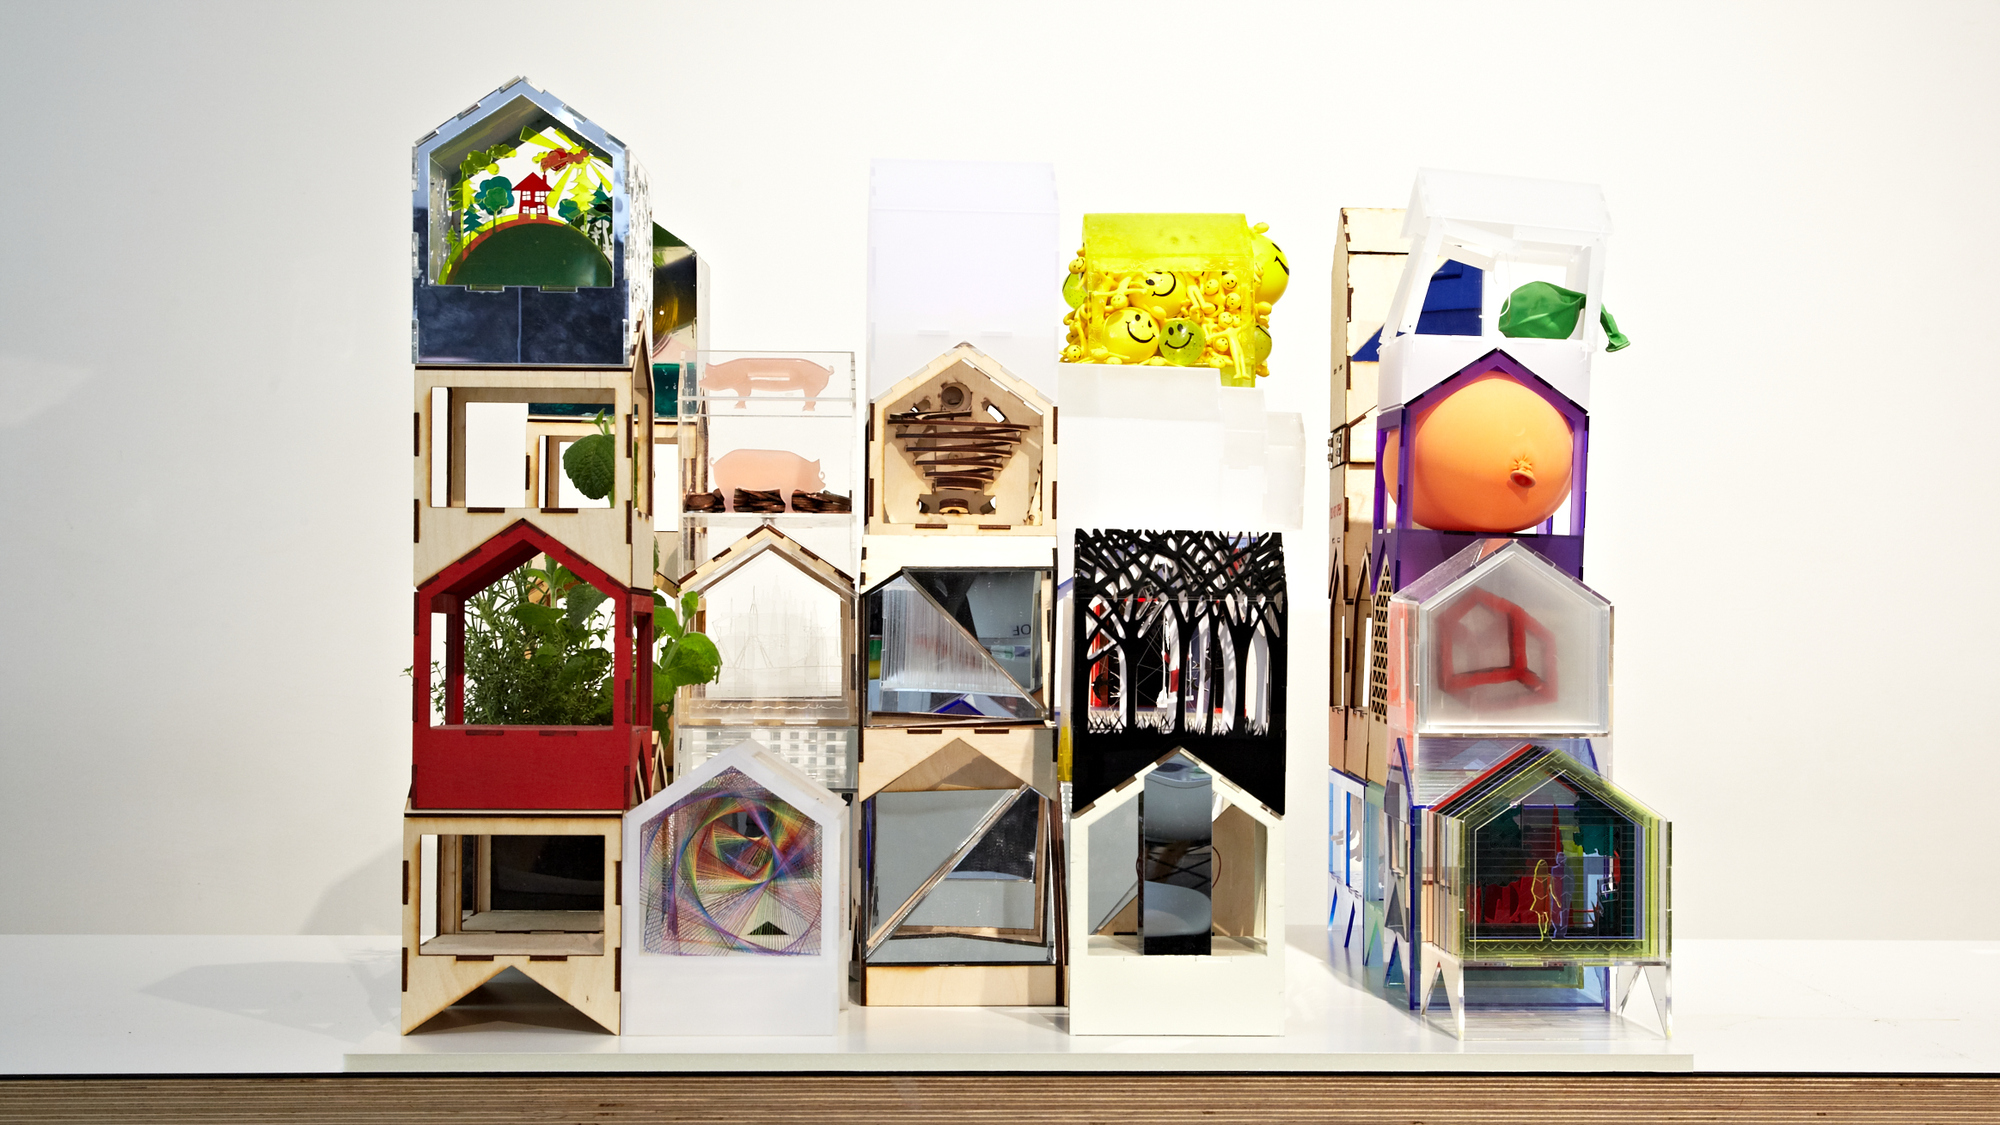 doll dolls architects houses